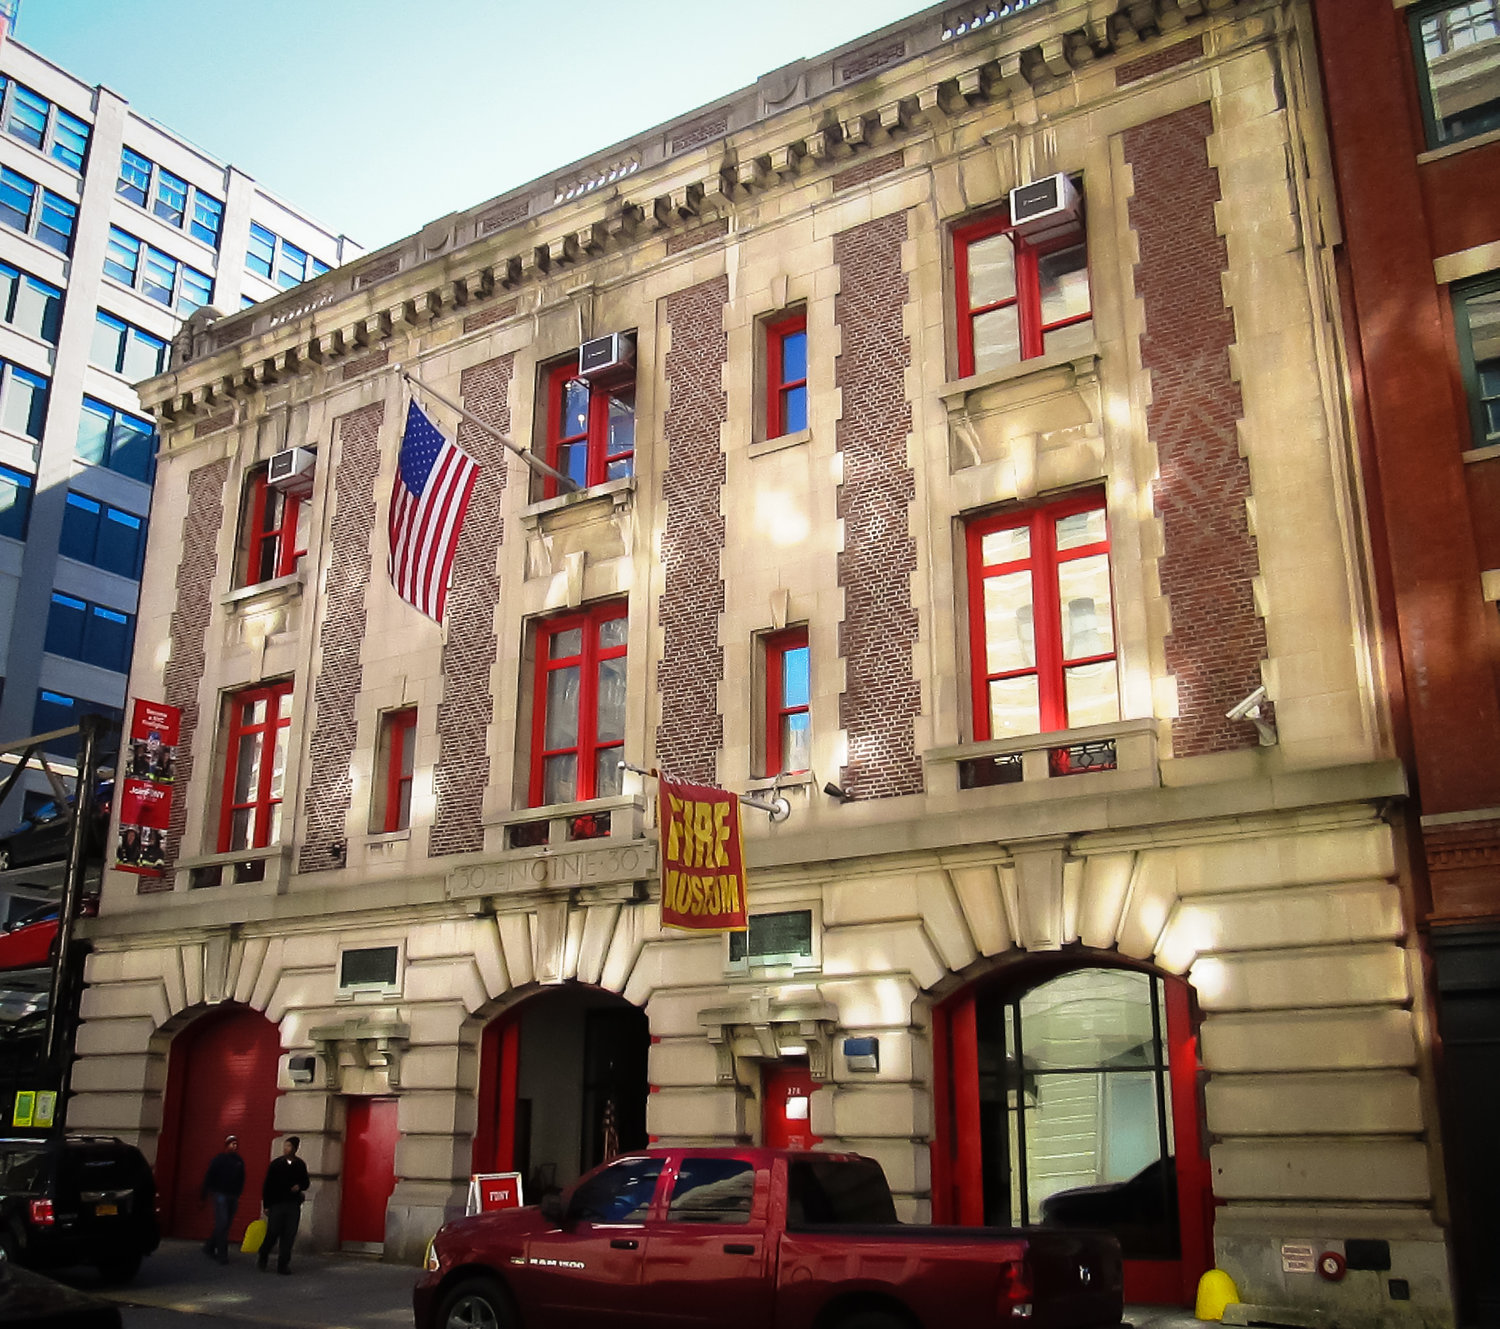 THE NEW YORK CITY FIRE MUSEUM ON 278 SPRING STREET, SOHO. PHOTO:   @LUCASCOMPAN